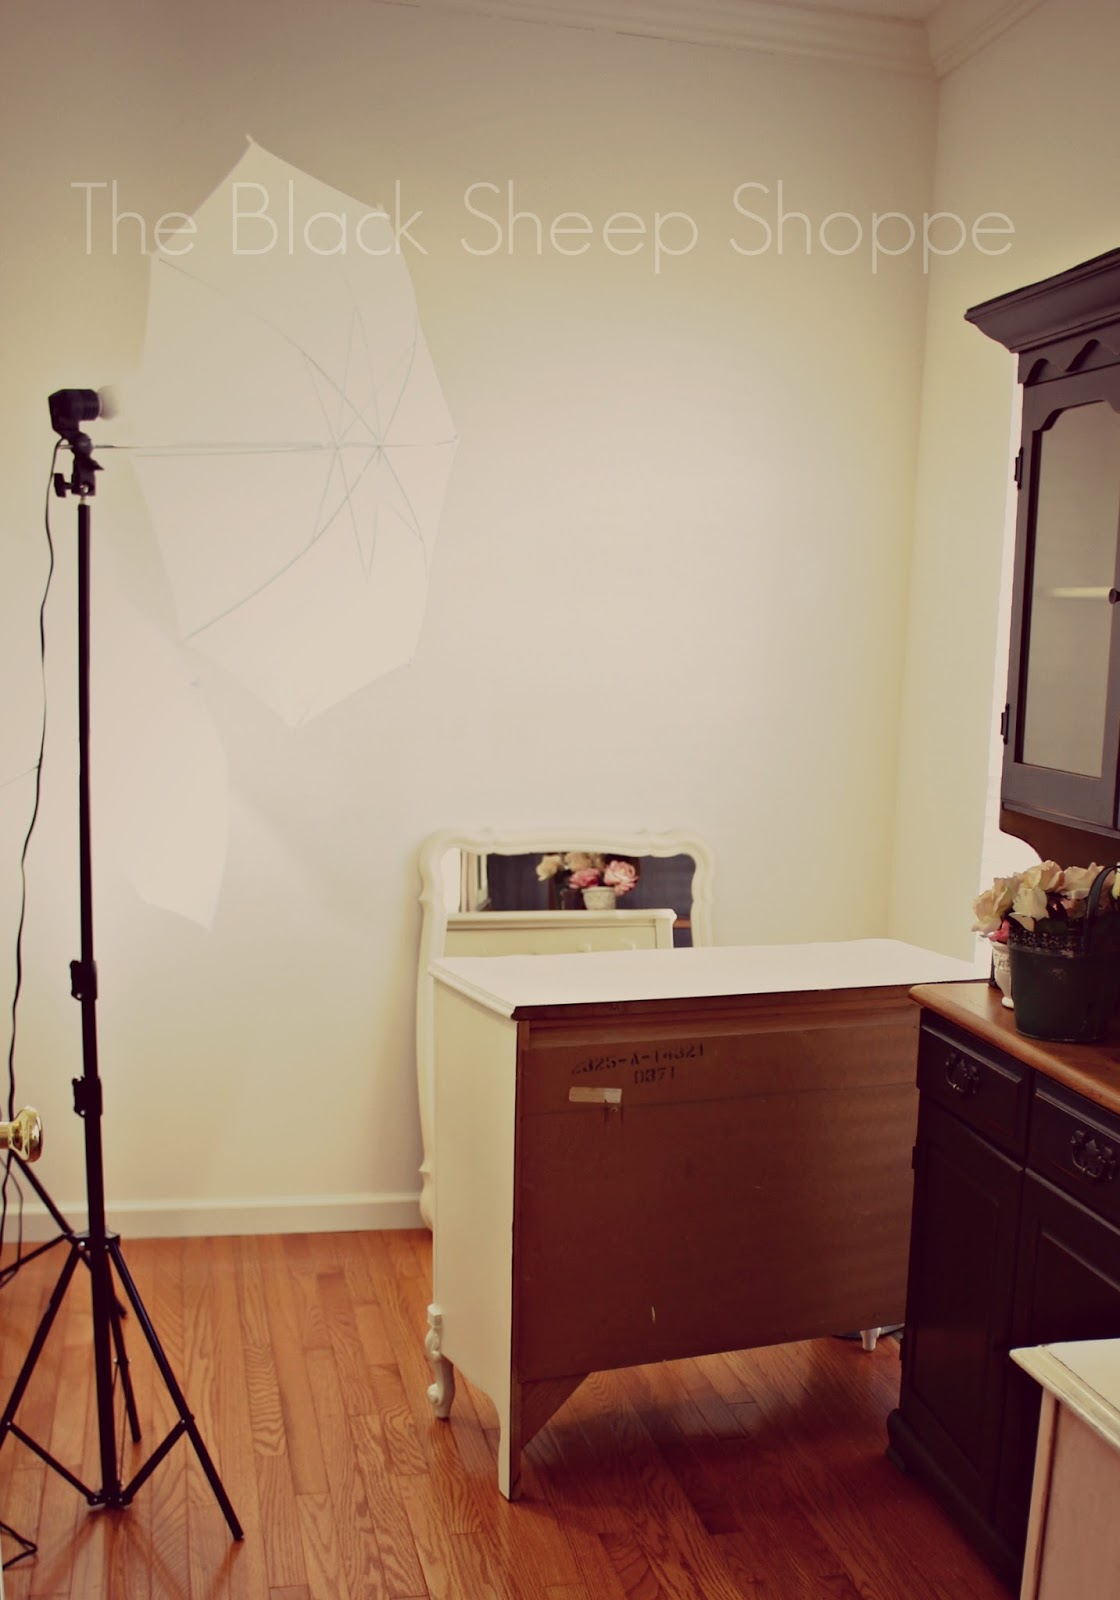 Setting up staging and lights for furniture photography